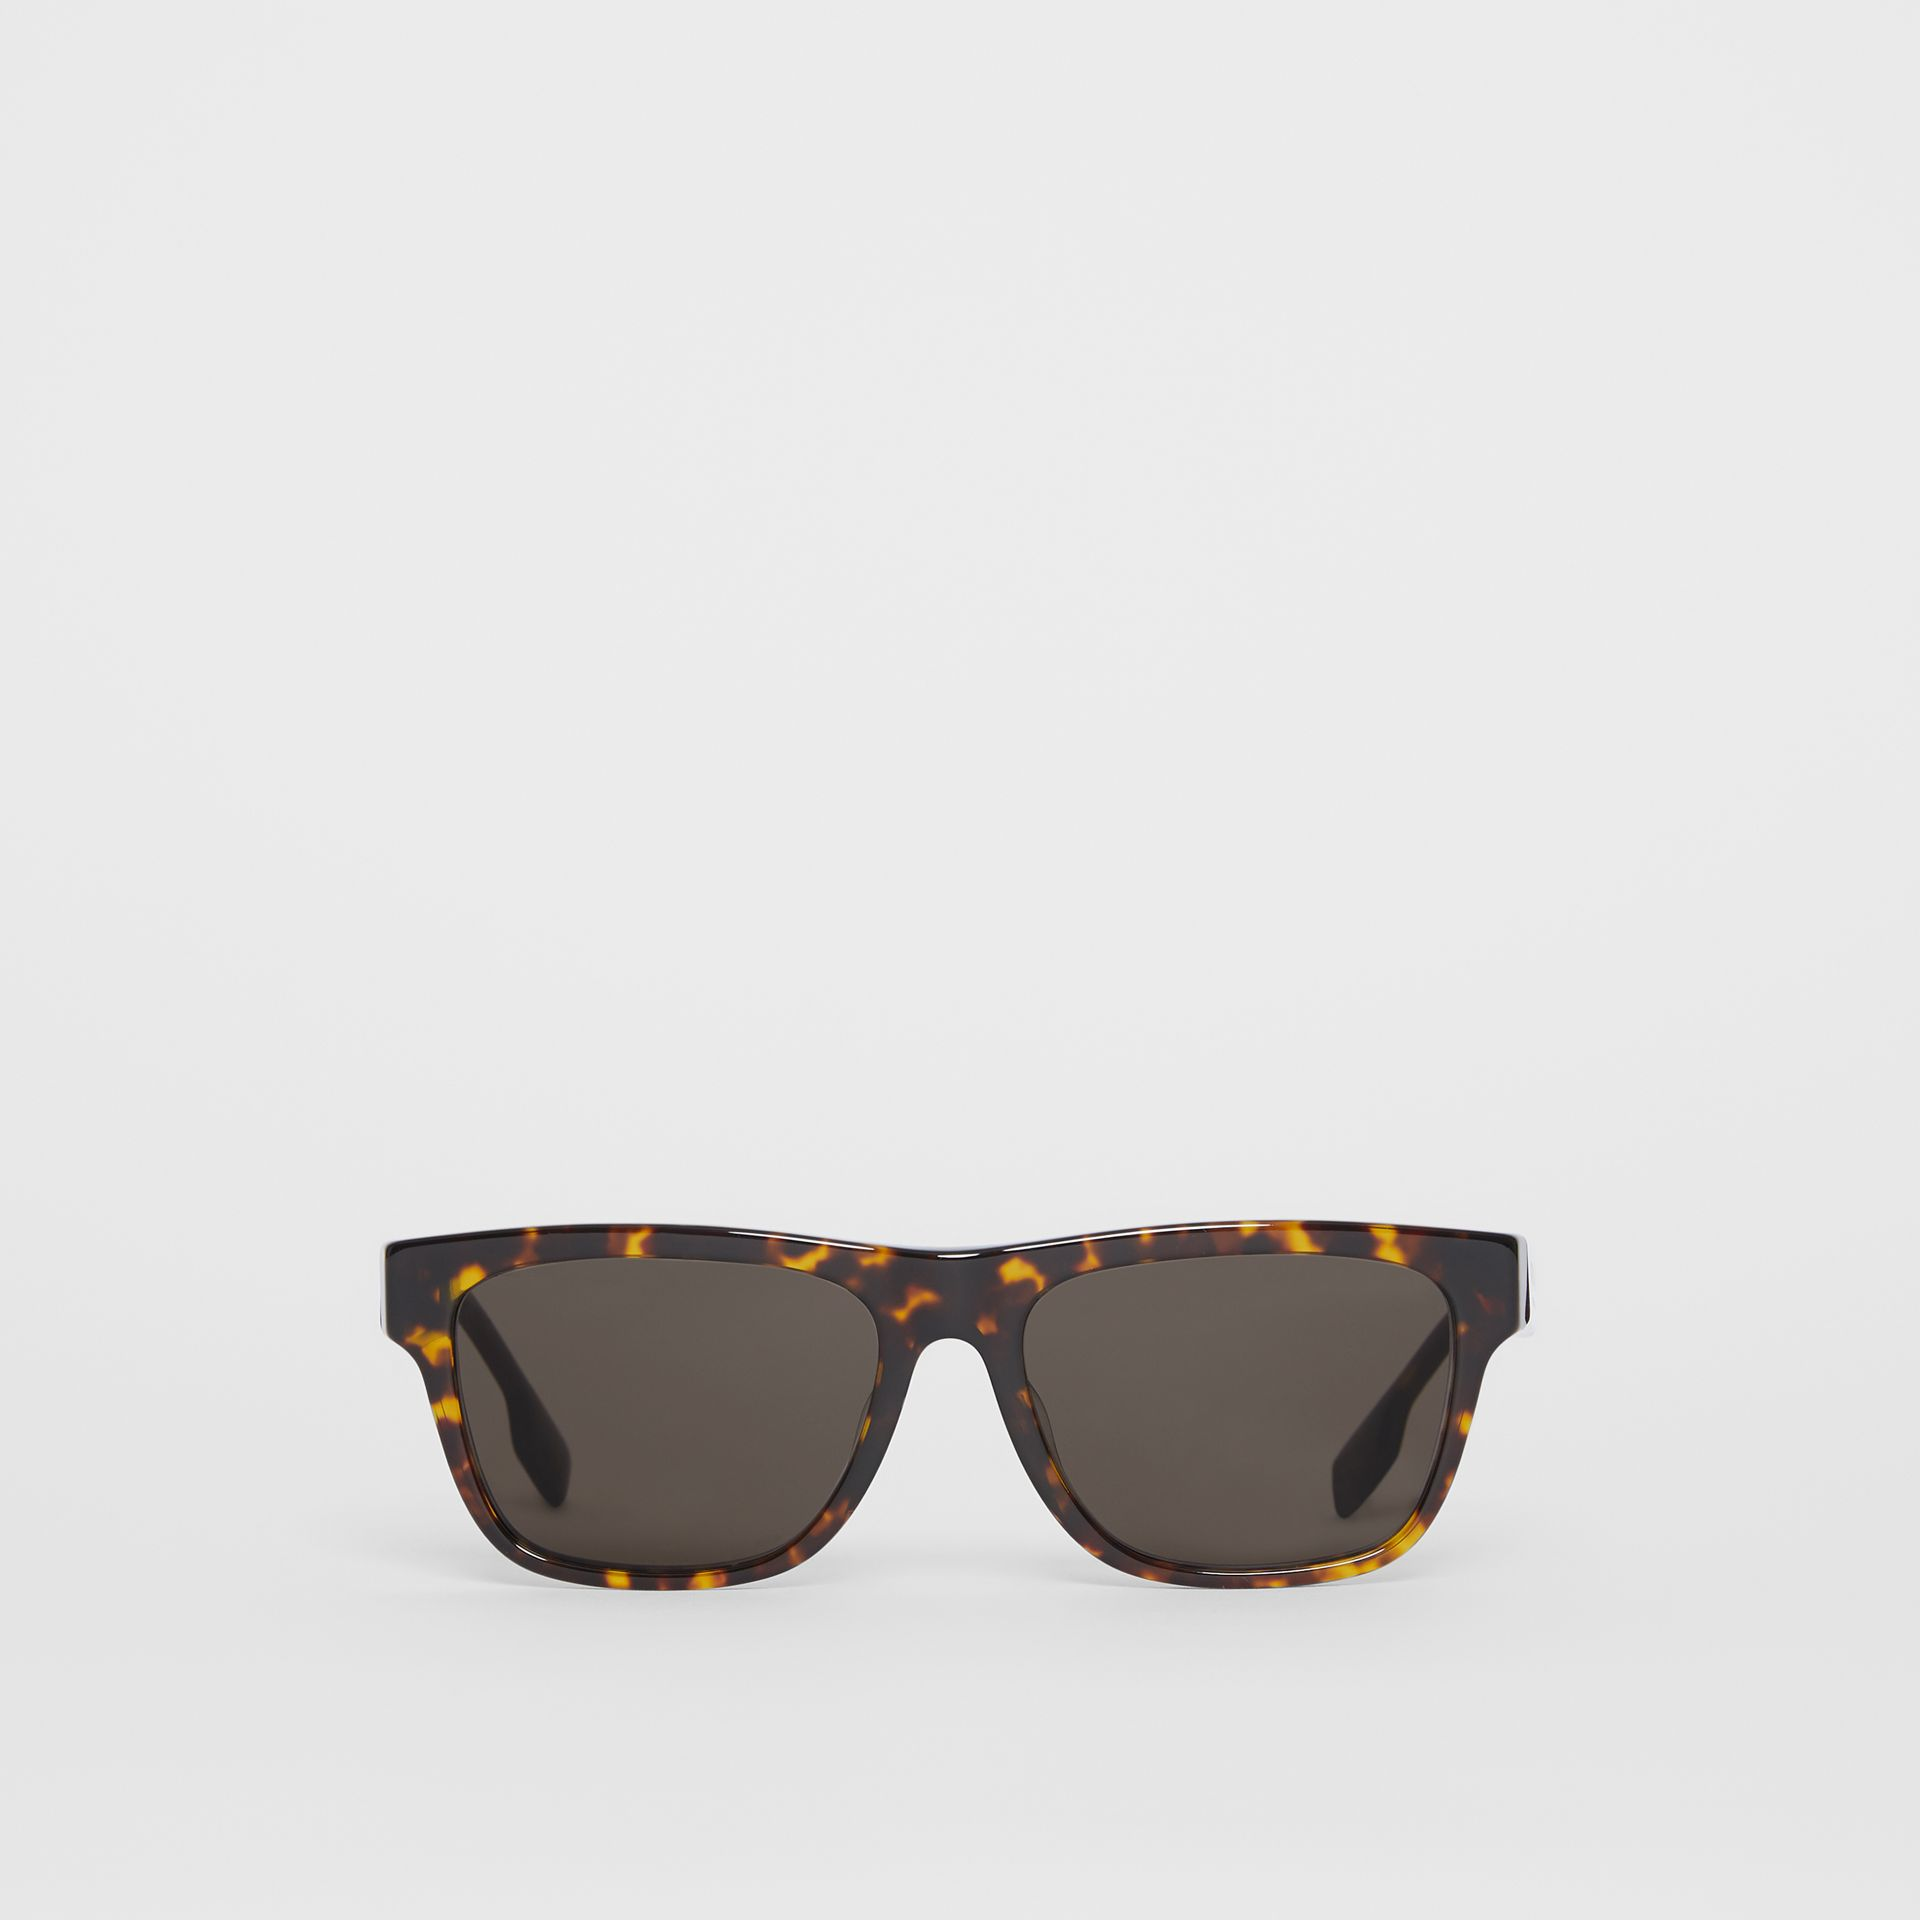 Square Frame Sunglasses in Tortoiseshell - Men | Burberry - gallery image 0